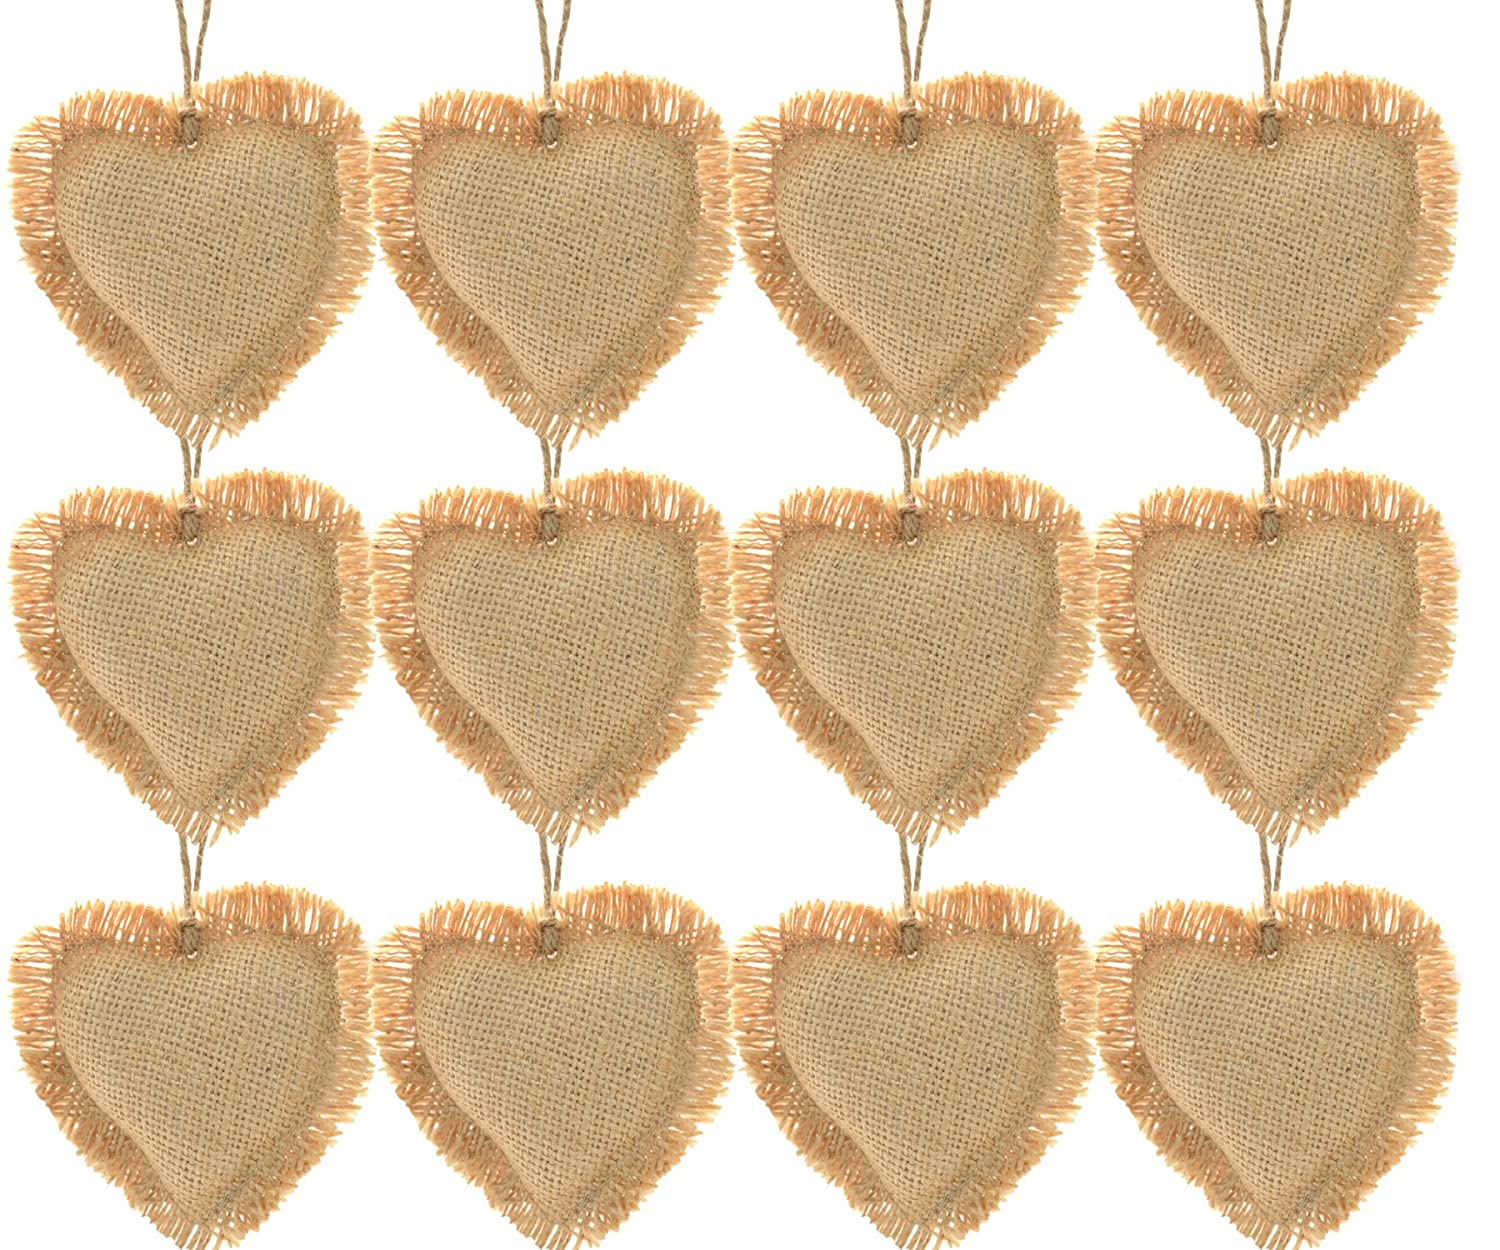 Amazon.com: Firefly Craft Rustic Burlap Heart Ornaments, Package of 12